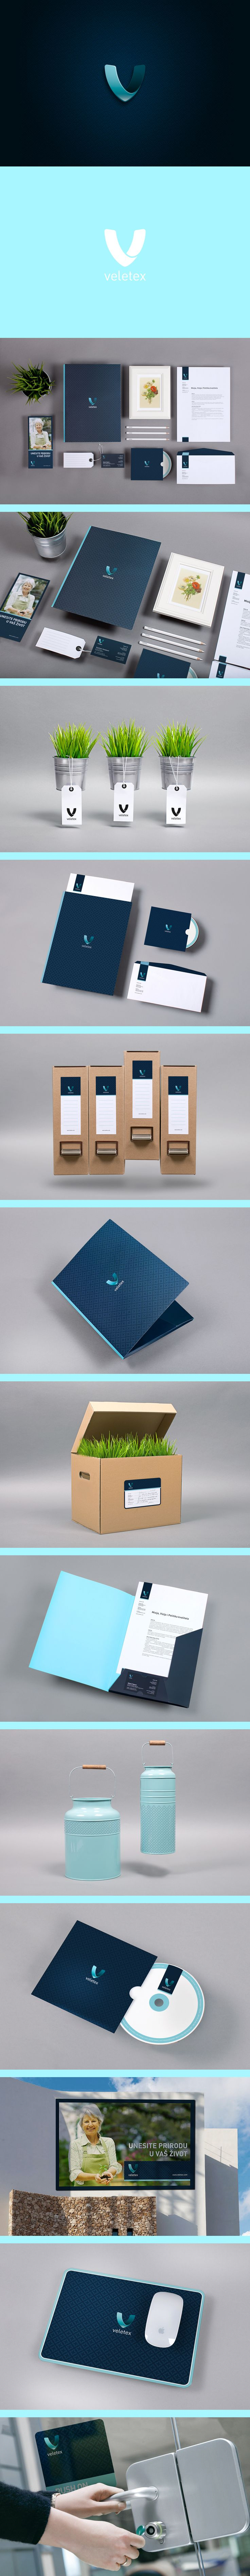 veletex | corporate branding <<< repinned by an #advertising agency from Hamburg, Germany - www.BlickeDeeler.de